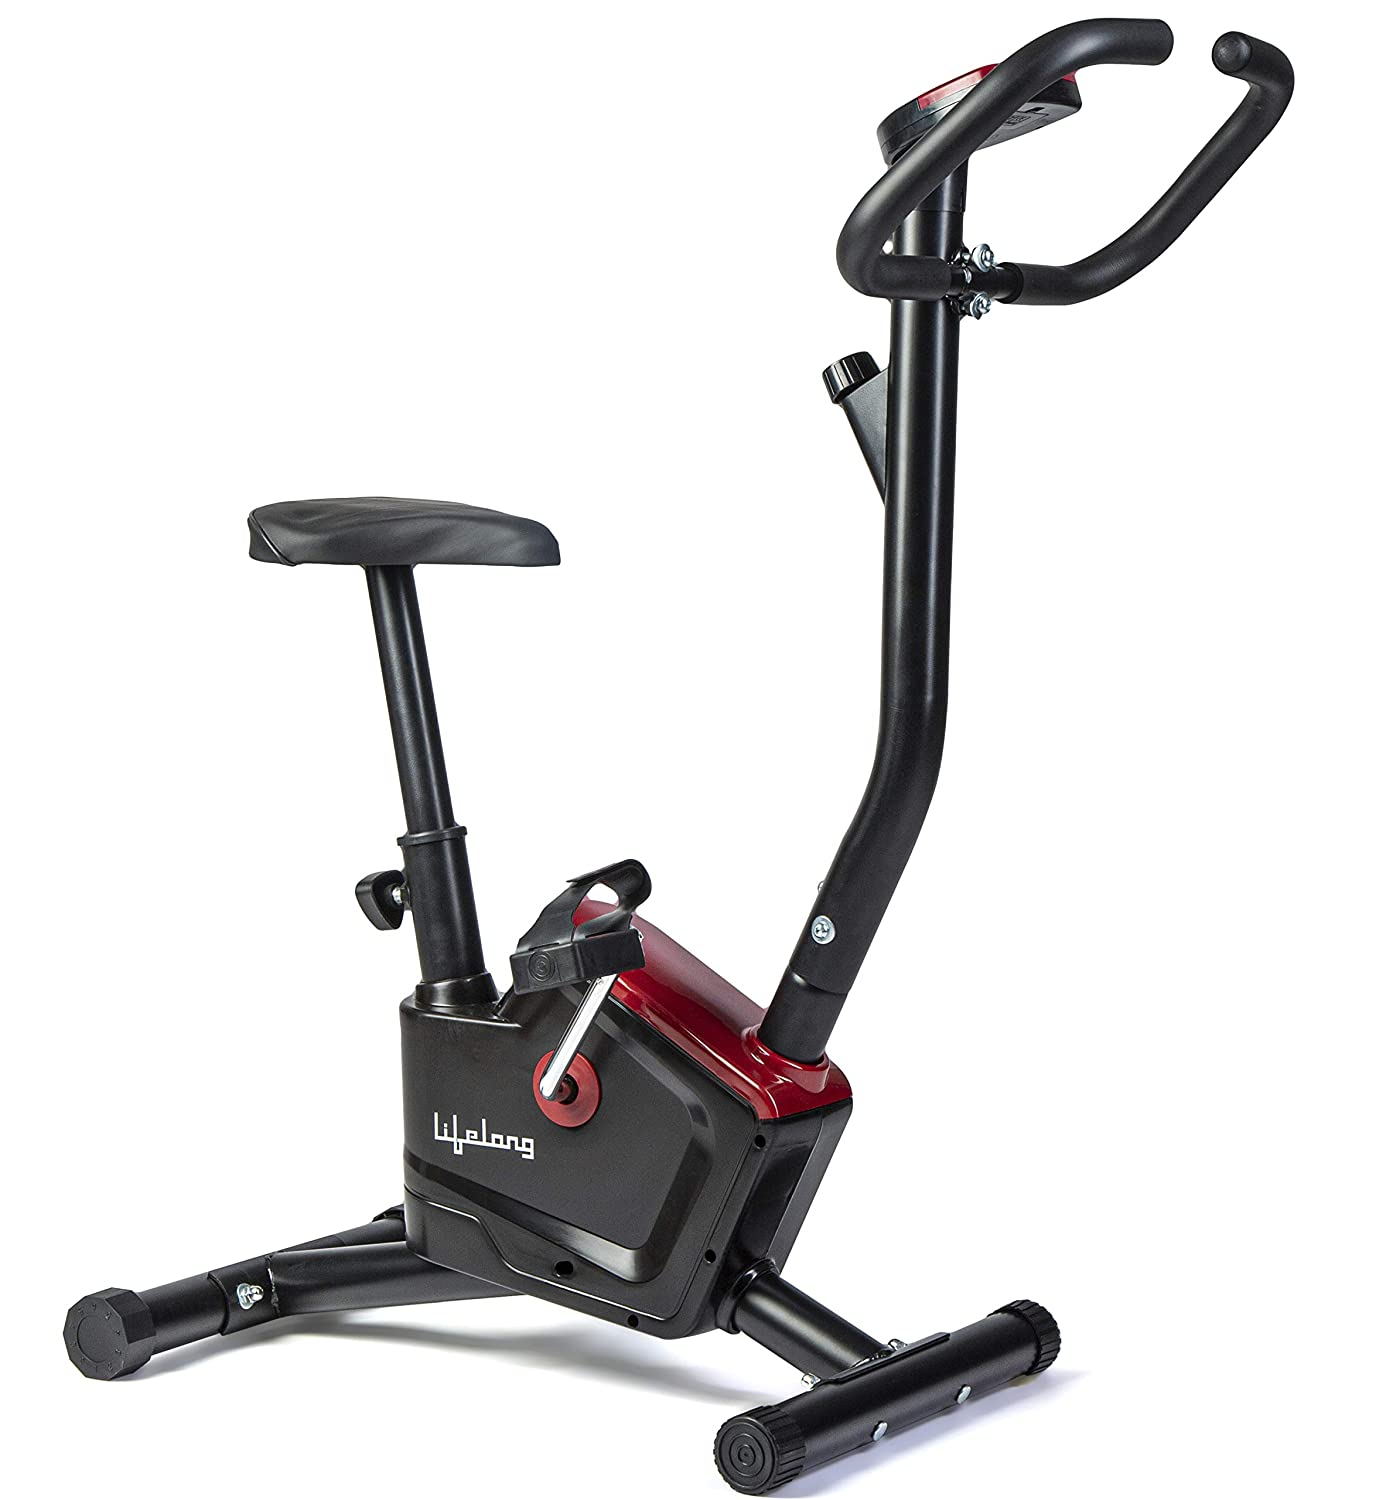 Lifelong LLF54 Stationary Exercise Bike for Home